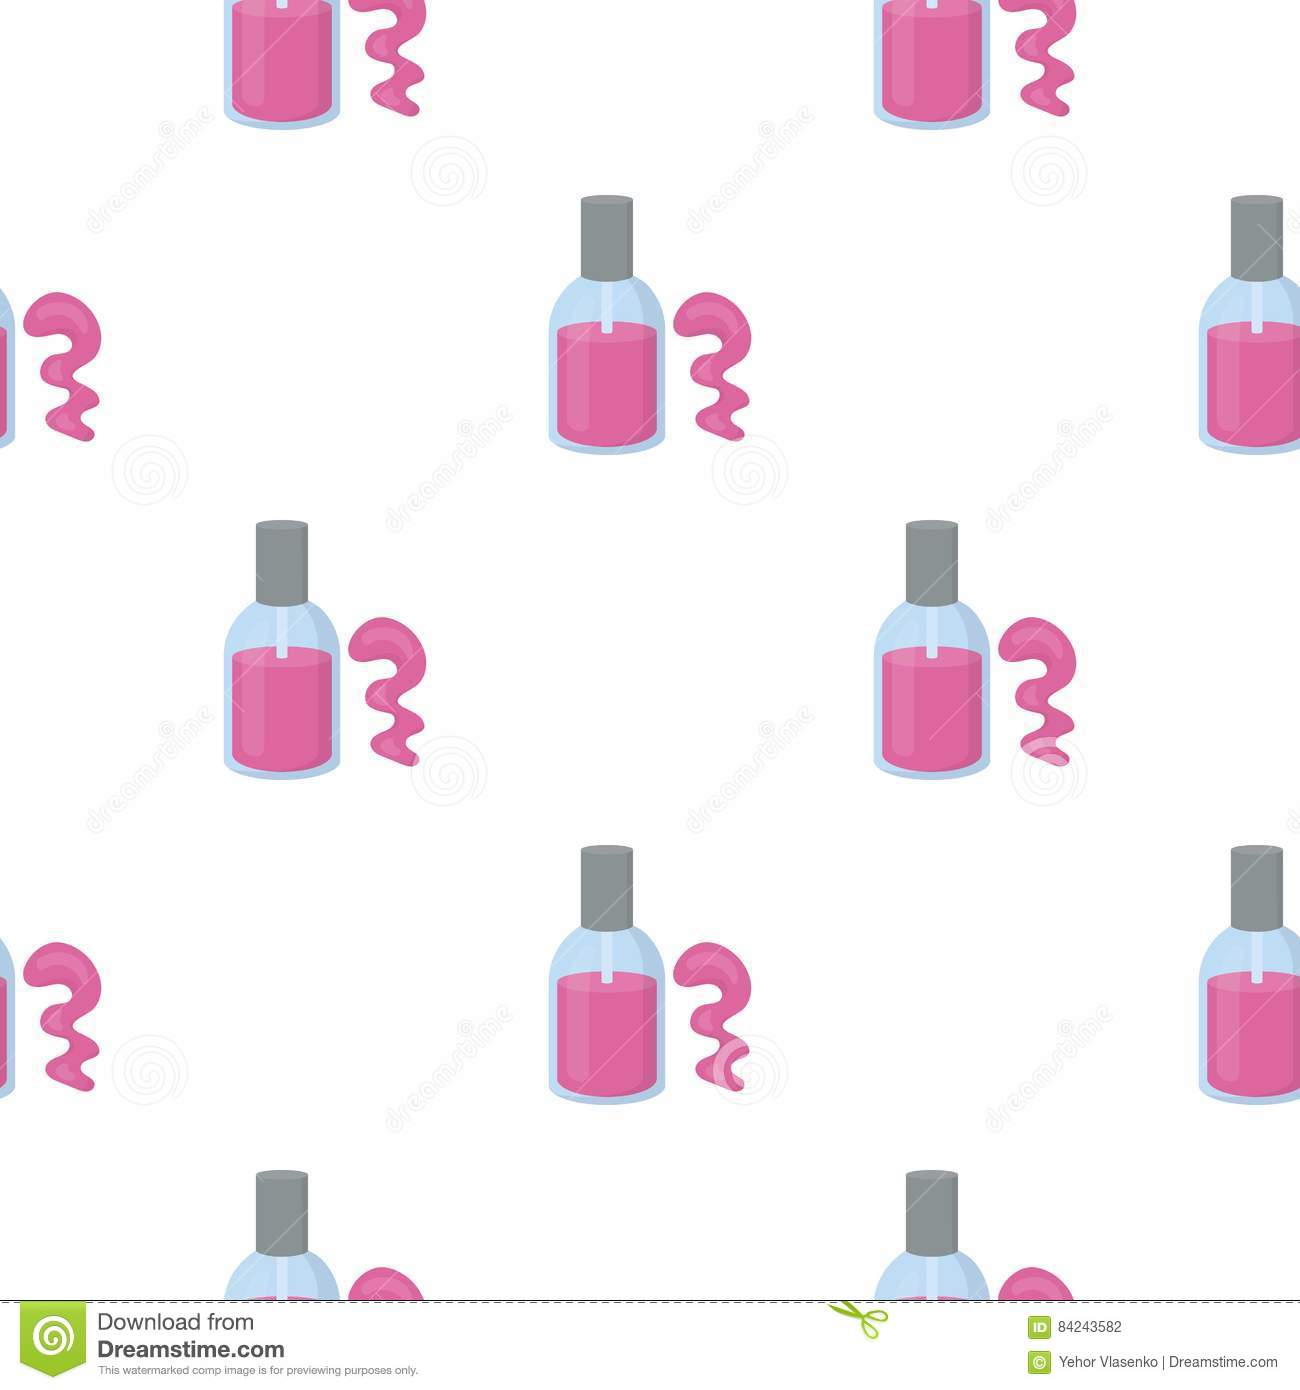 How To Draw A Cartoon Nail Polish Bottle | Hession Hairdressing